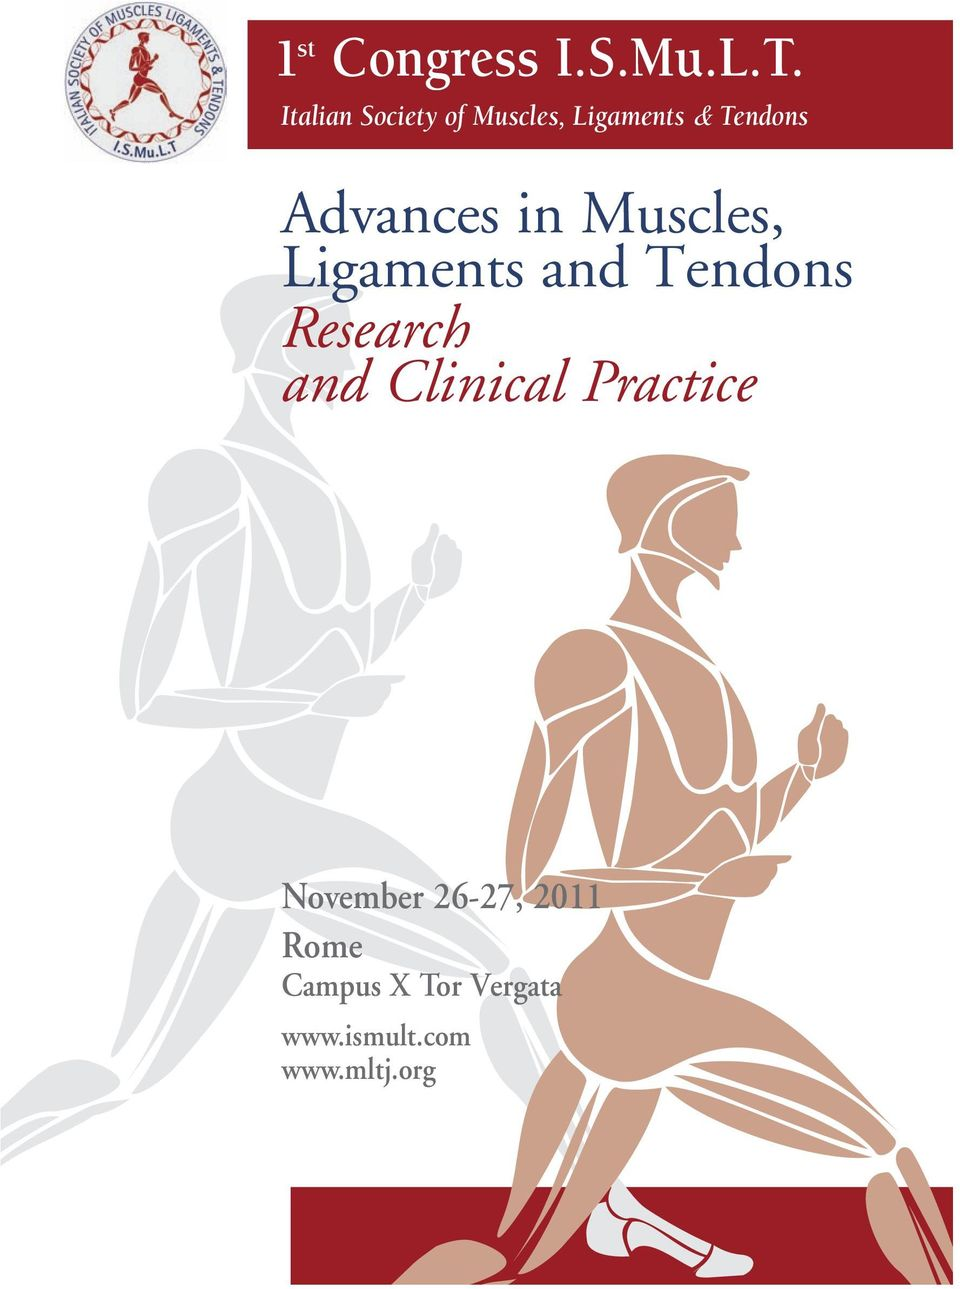 Advances in Muscles, Ligaments and Tendons Research and